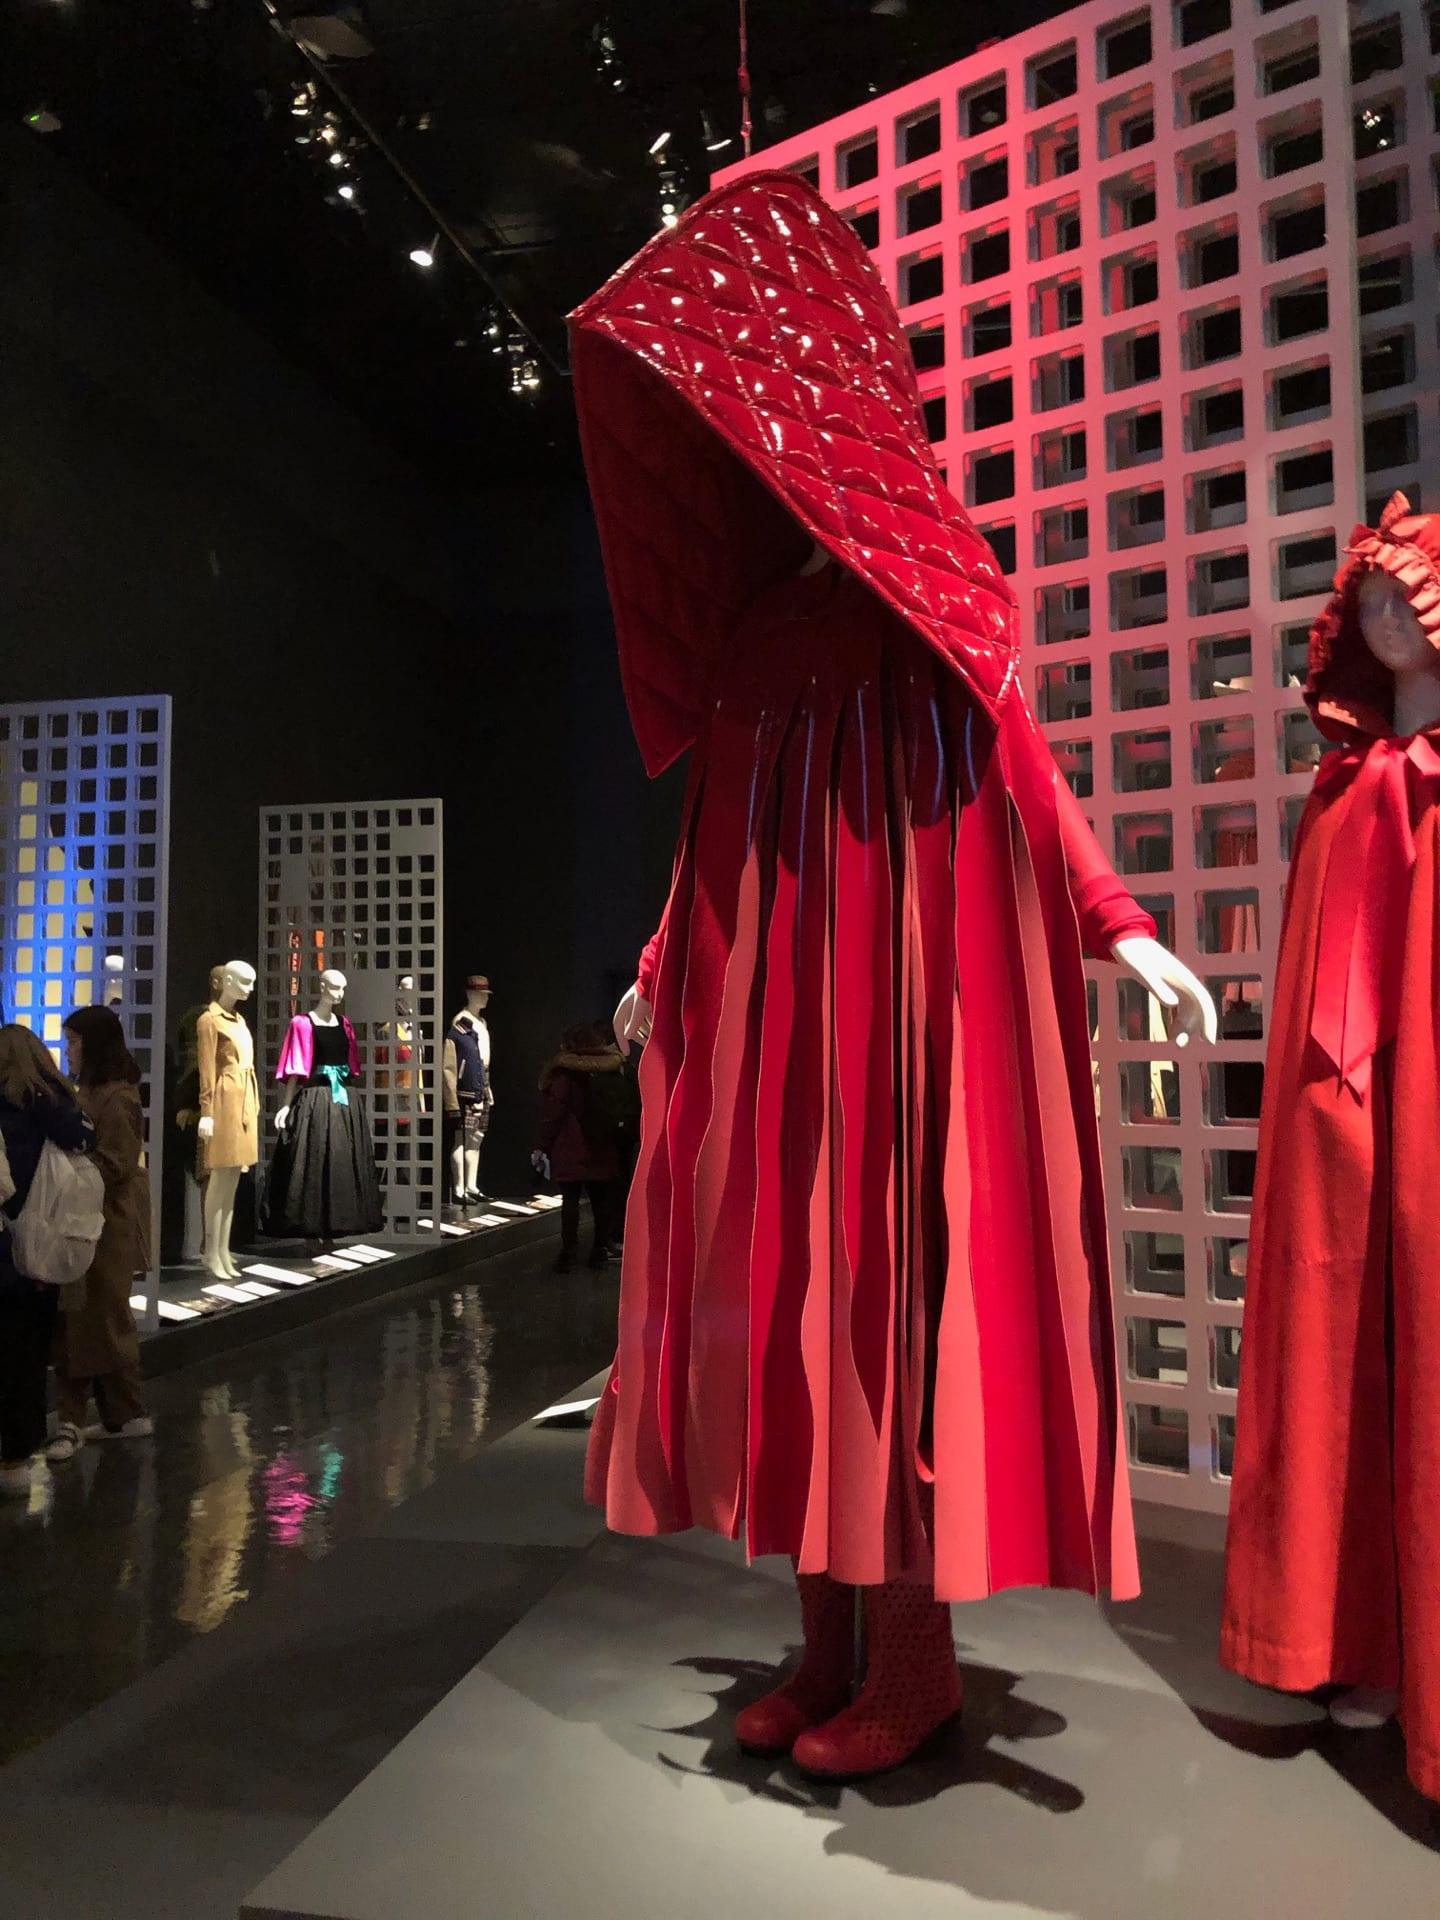 50 Years FIT, Fairy tale exhibition